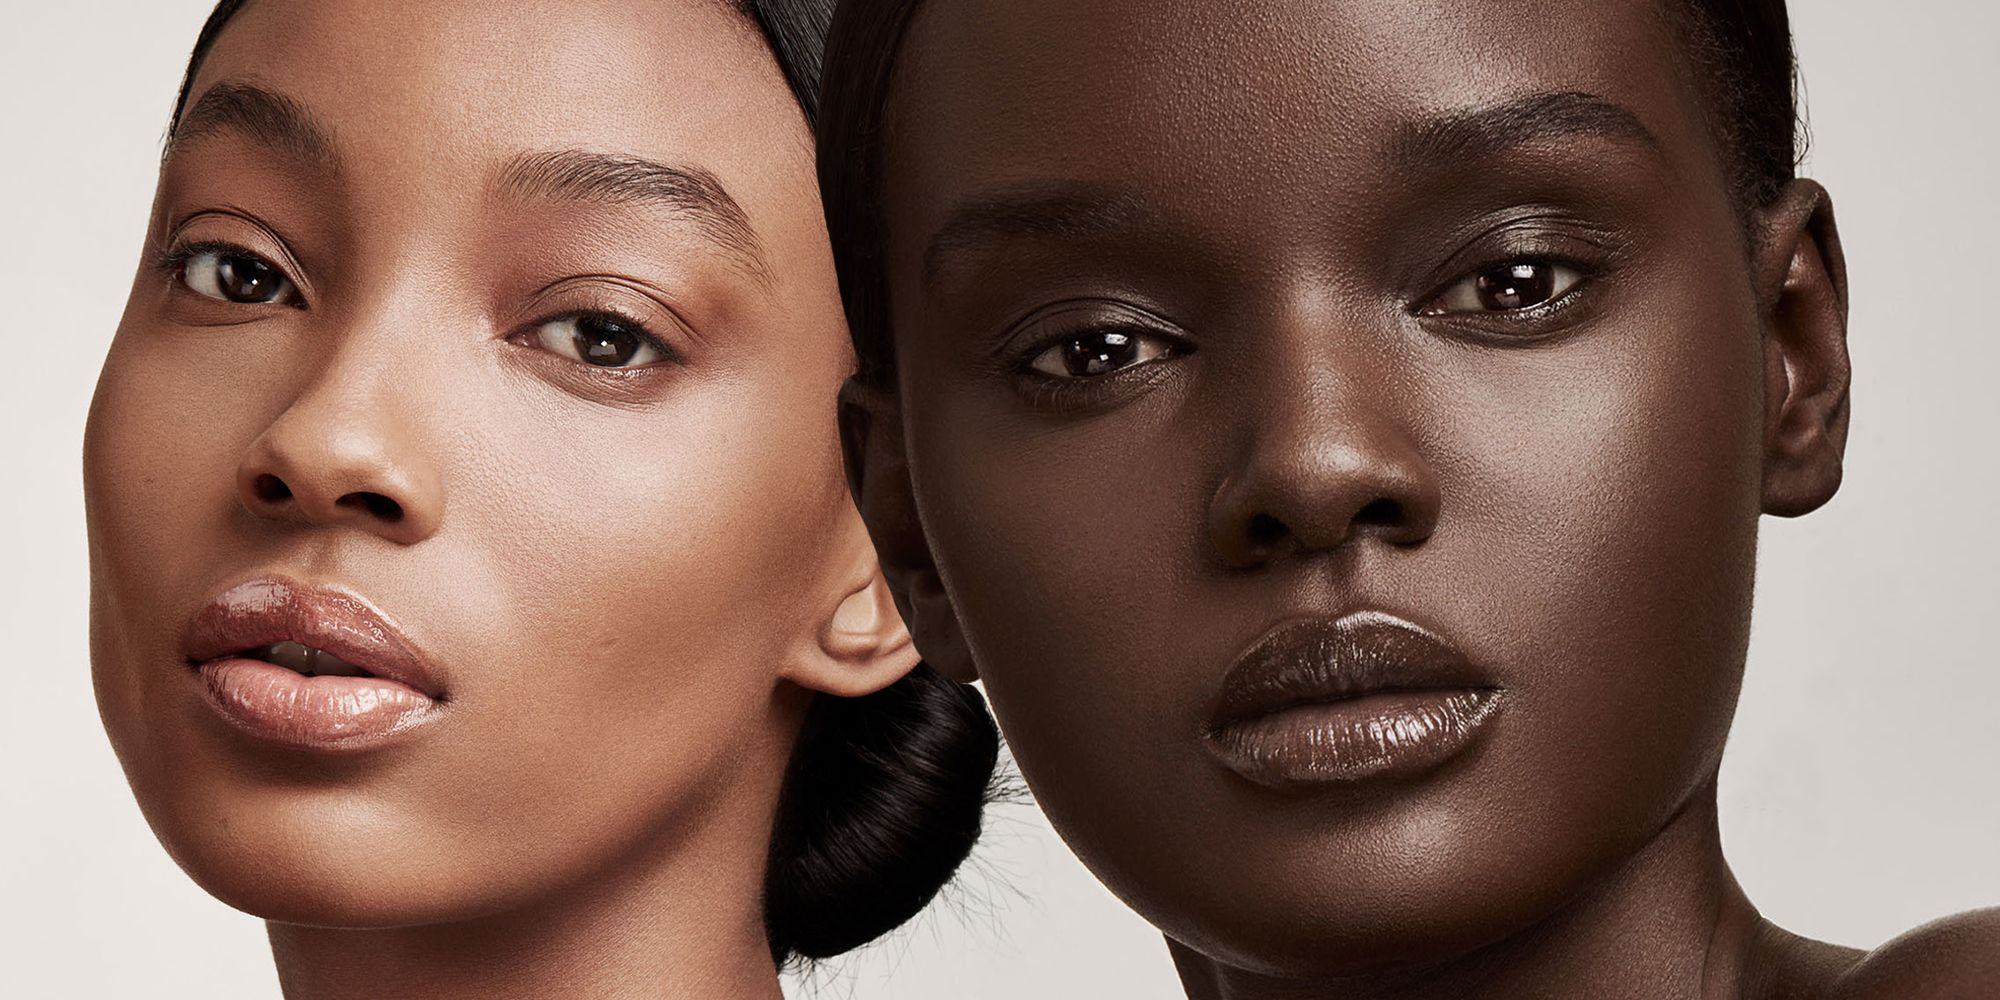 10 Best Liquid and Powder Foundation 2019 - Top Foundation Makeup for Your Face